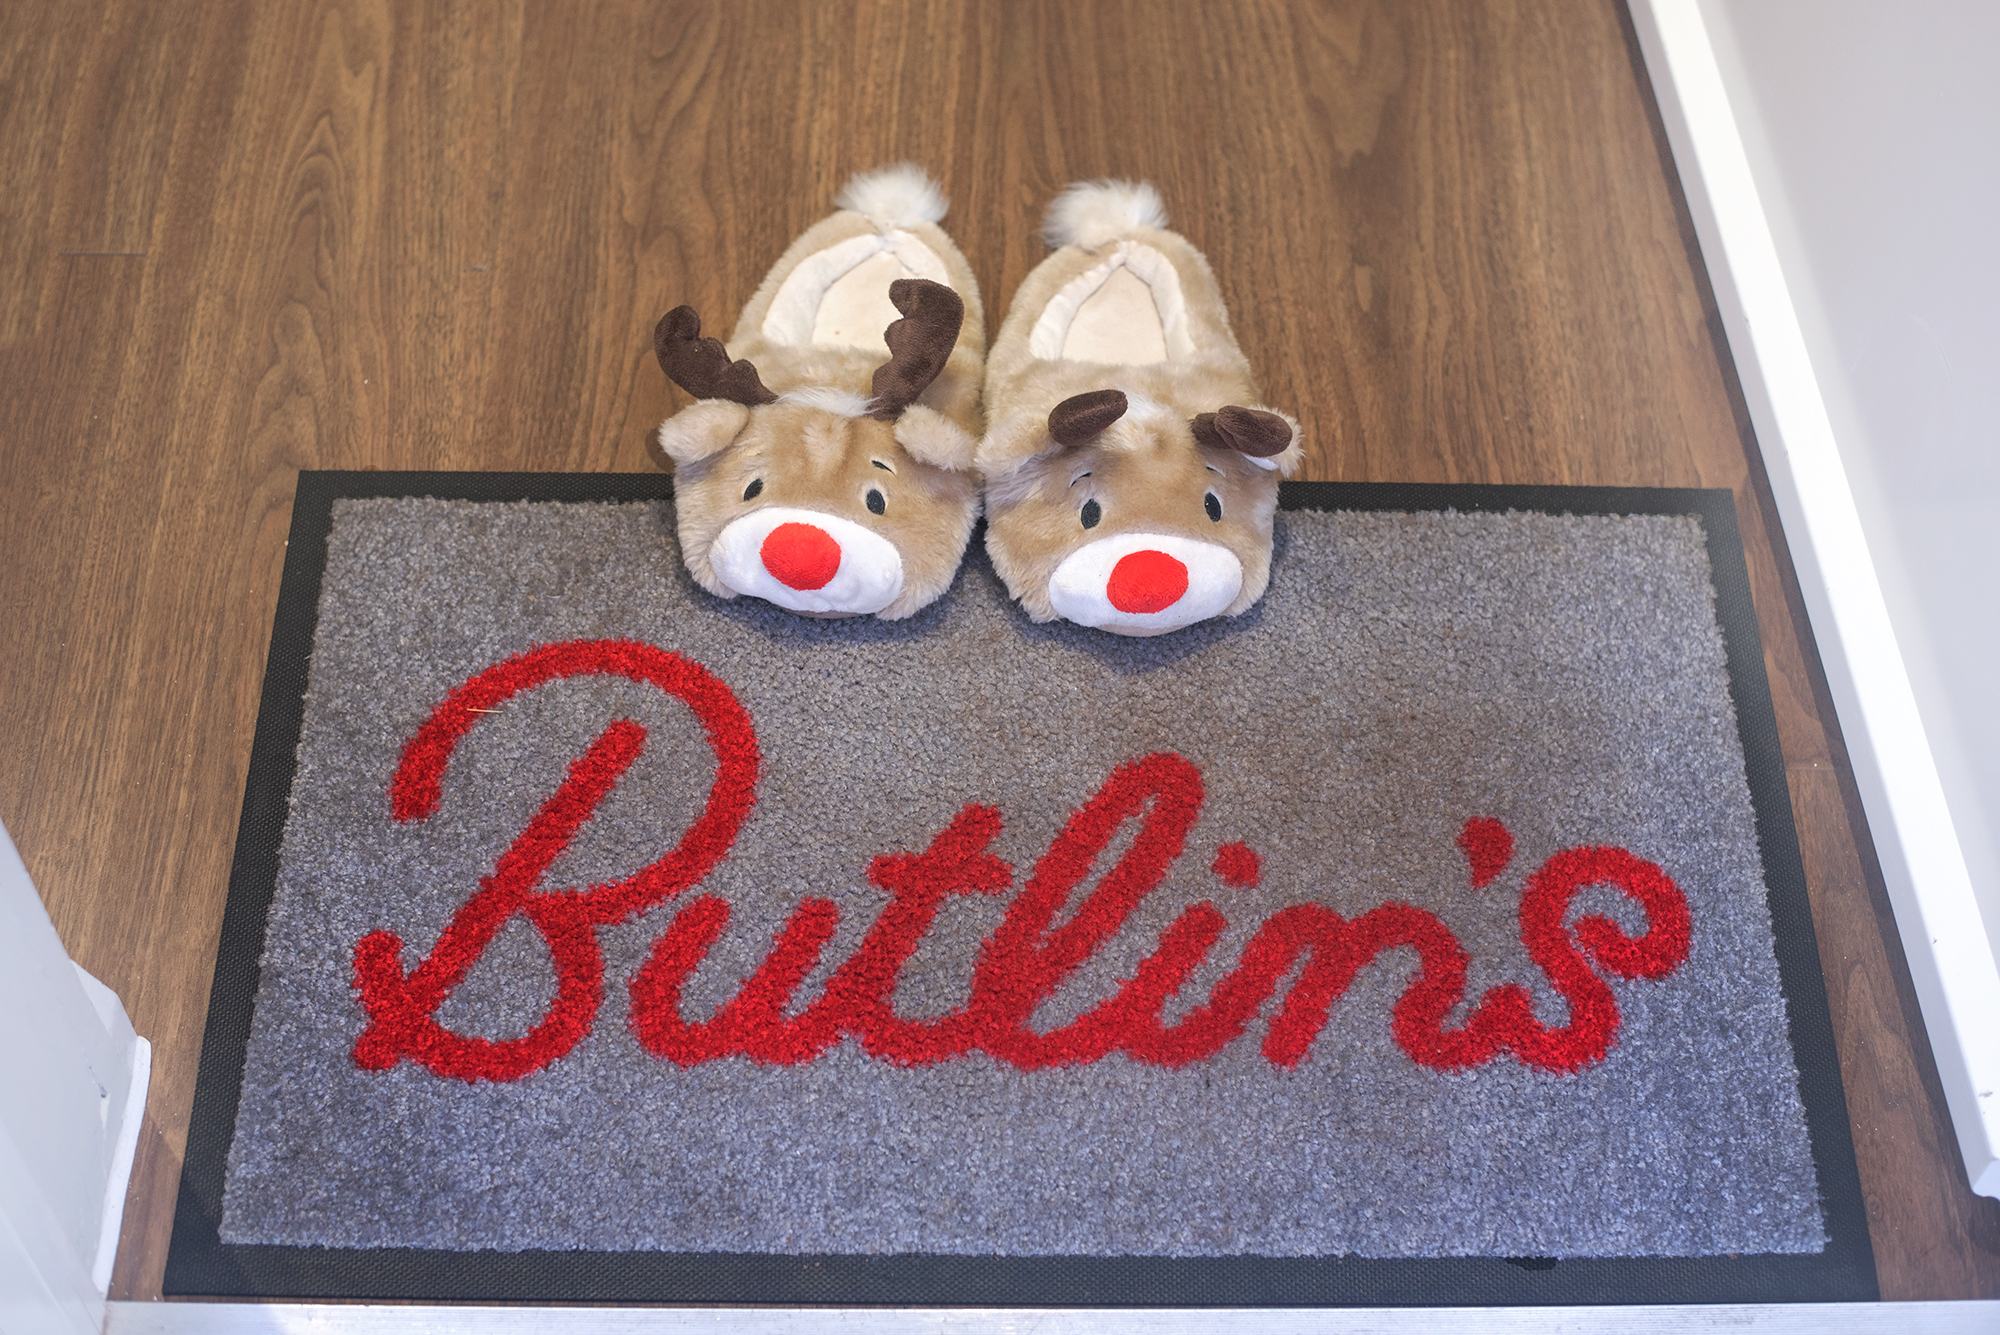 THE CHRISTMAS EXPERIENCE AT BUTLINS: THE FINAL DAY